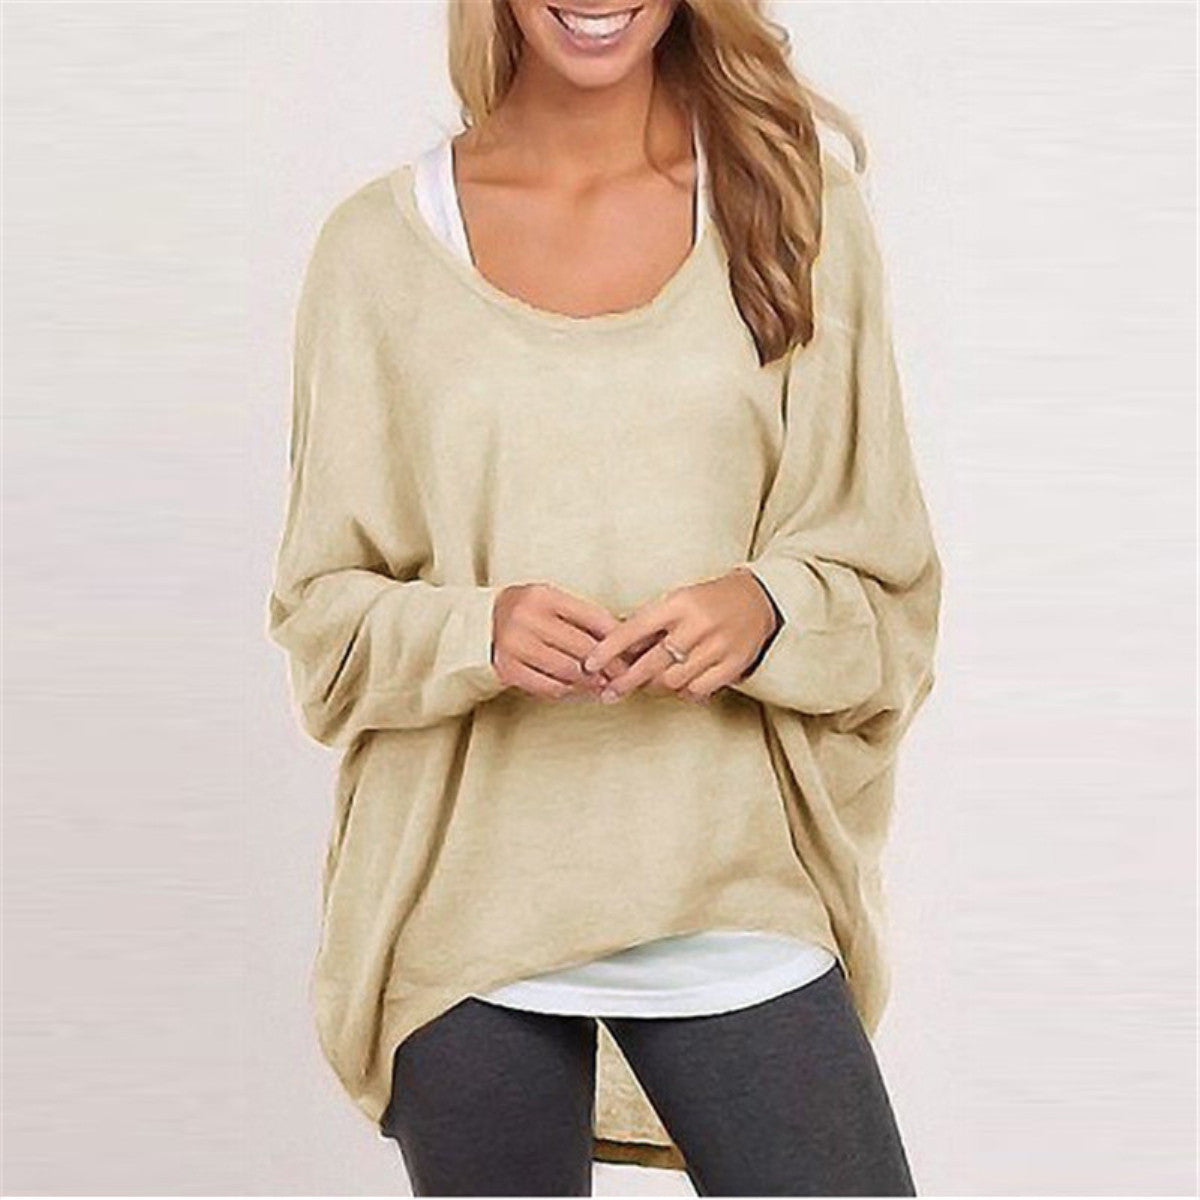 Beige / MWomen Sweater Jumper Pullover Batwing Long Sleeve Casual Loose Solid Blouse Shirt Top Plus